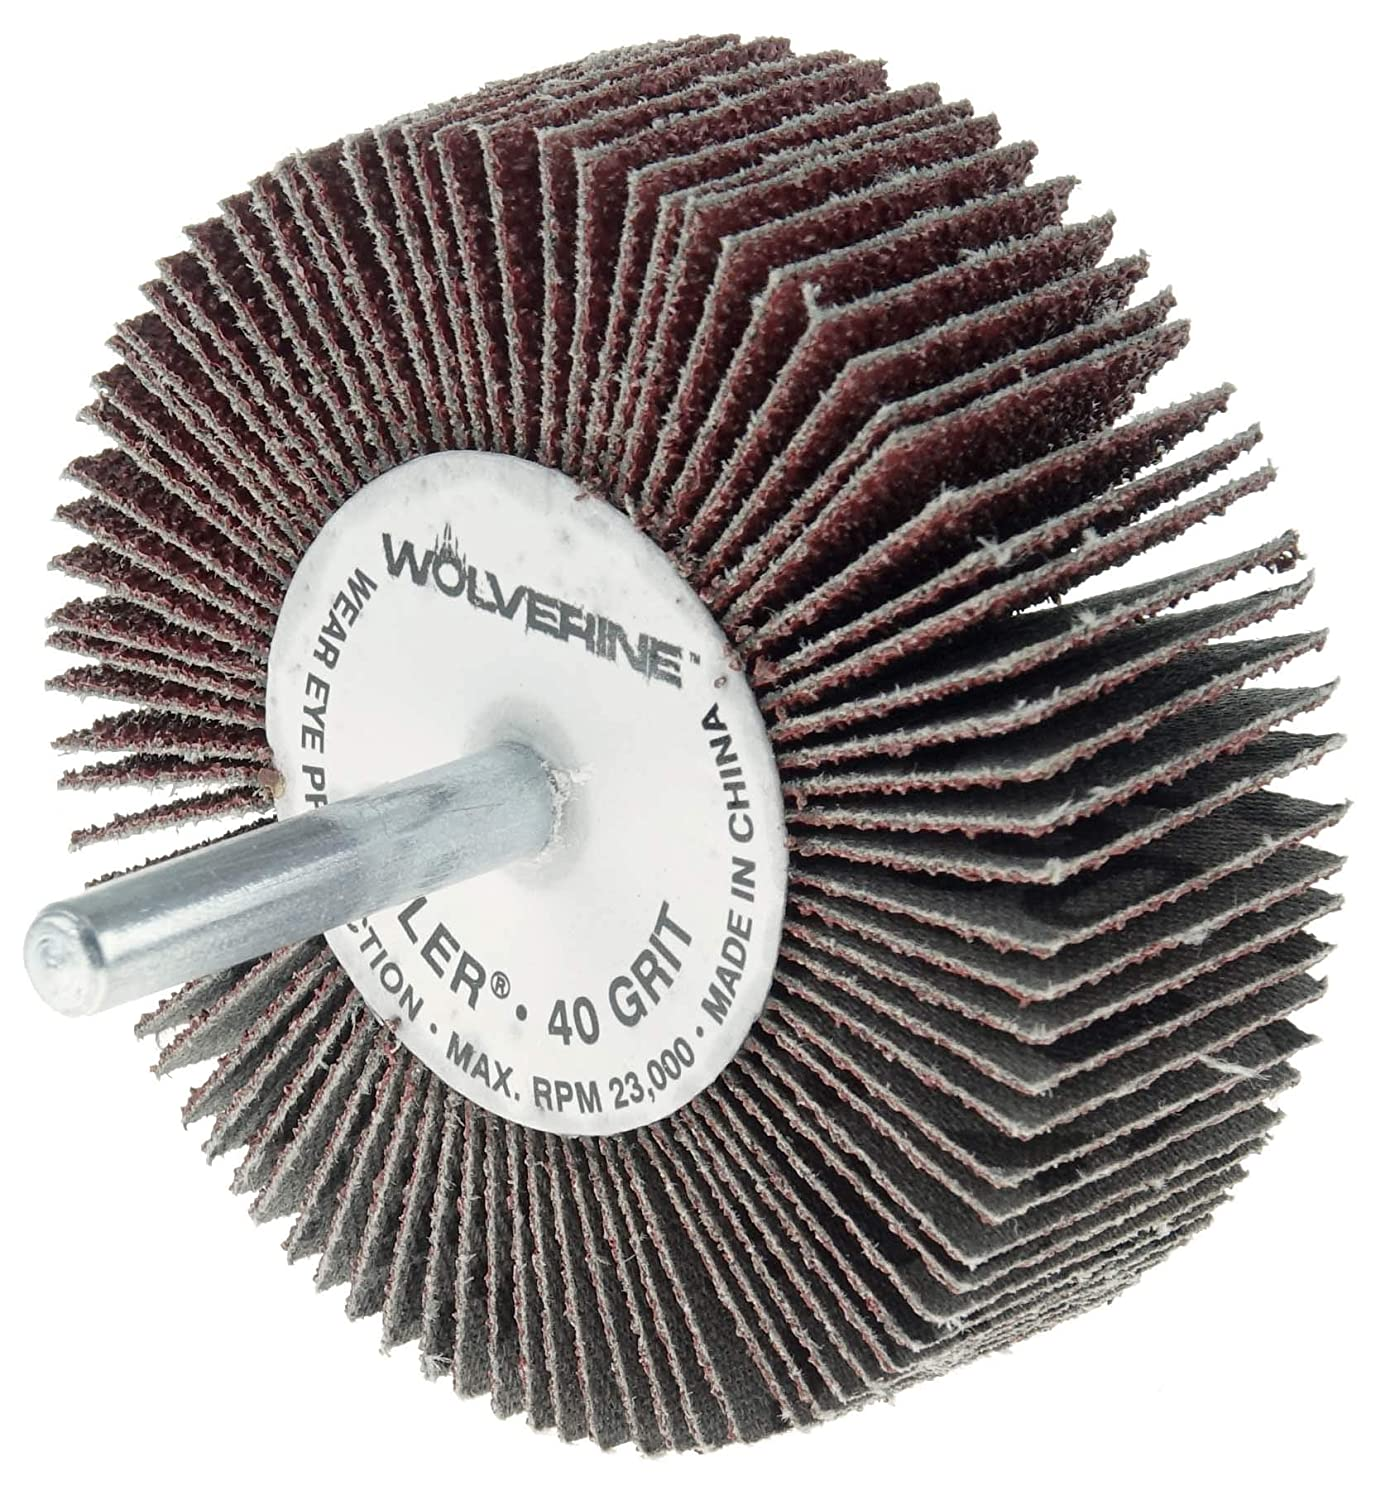 Weiler 30722 1 x 1 x 120AO Wolverine Coated Abrasive Flap Wheel 1//4 Stem Pack of 10